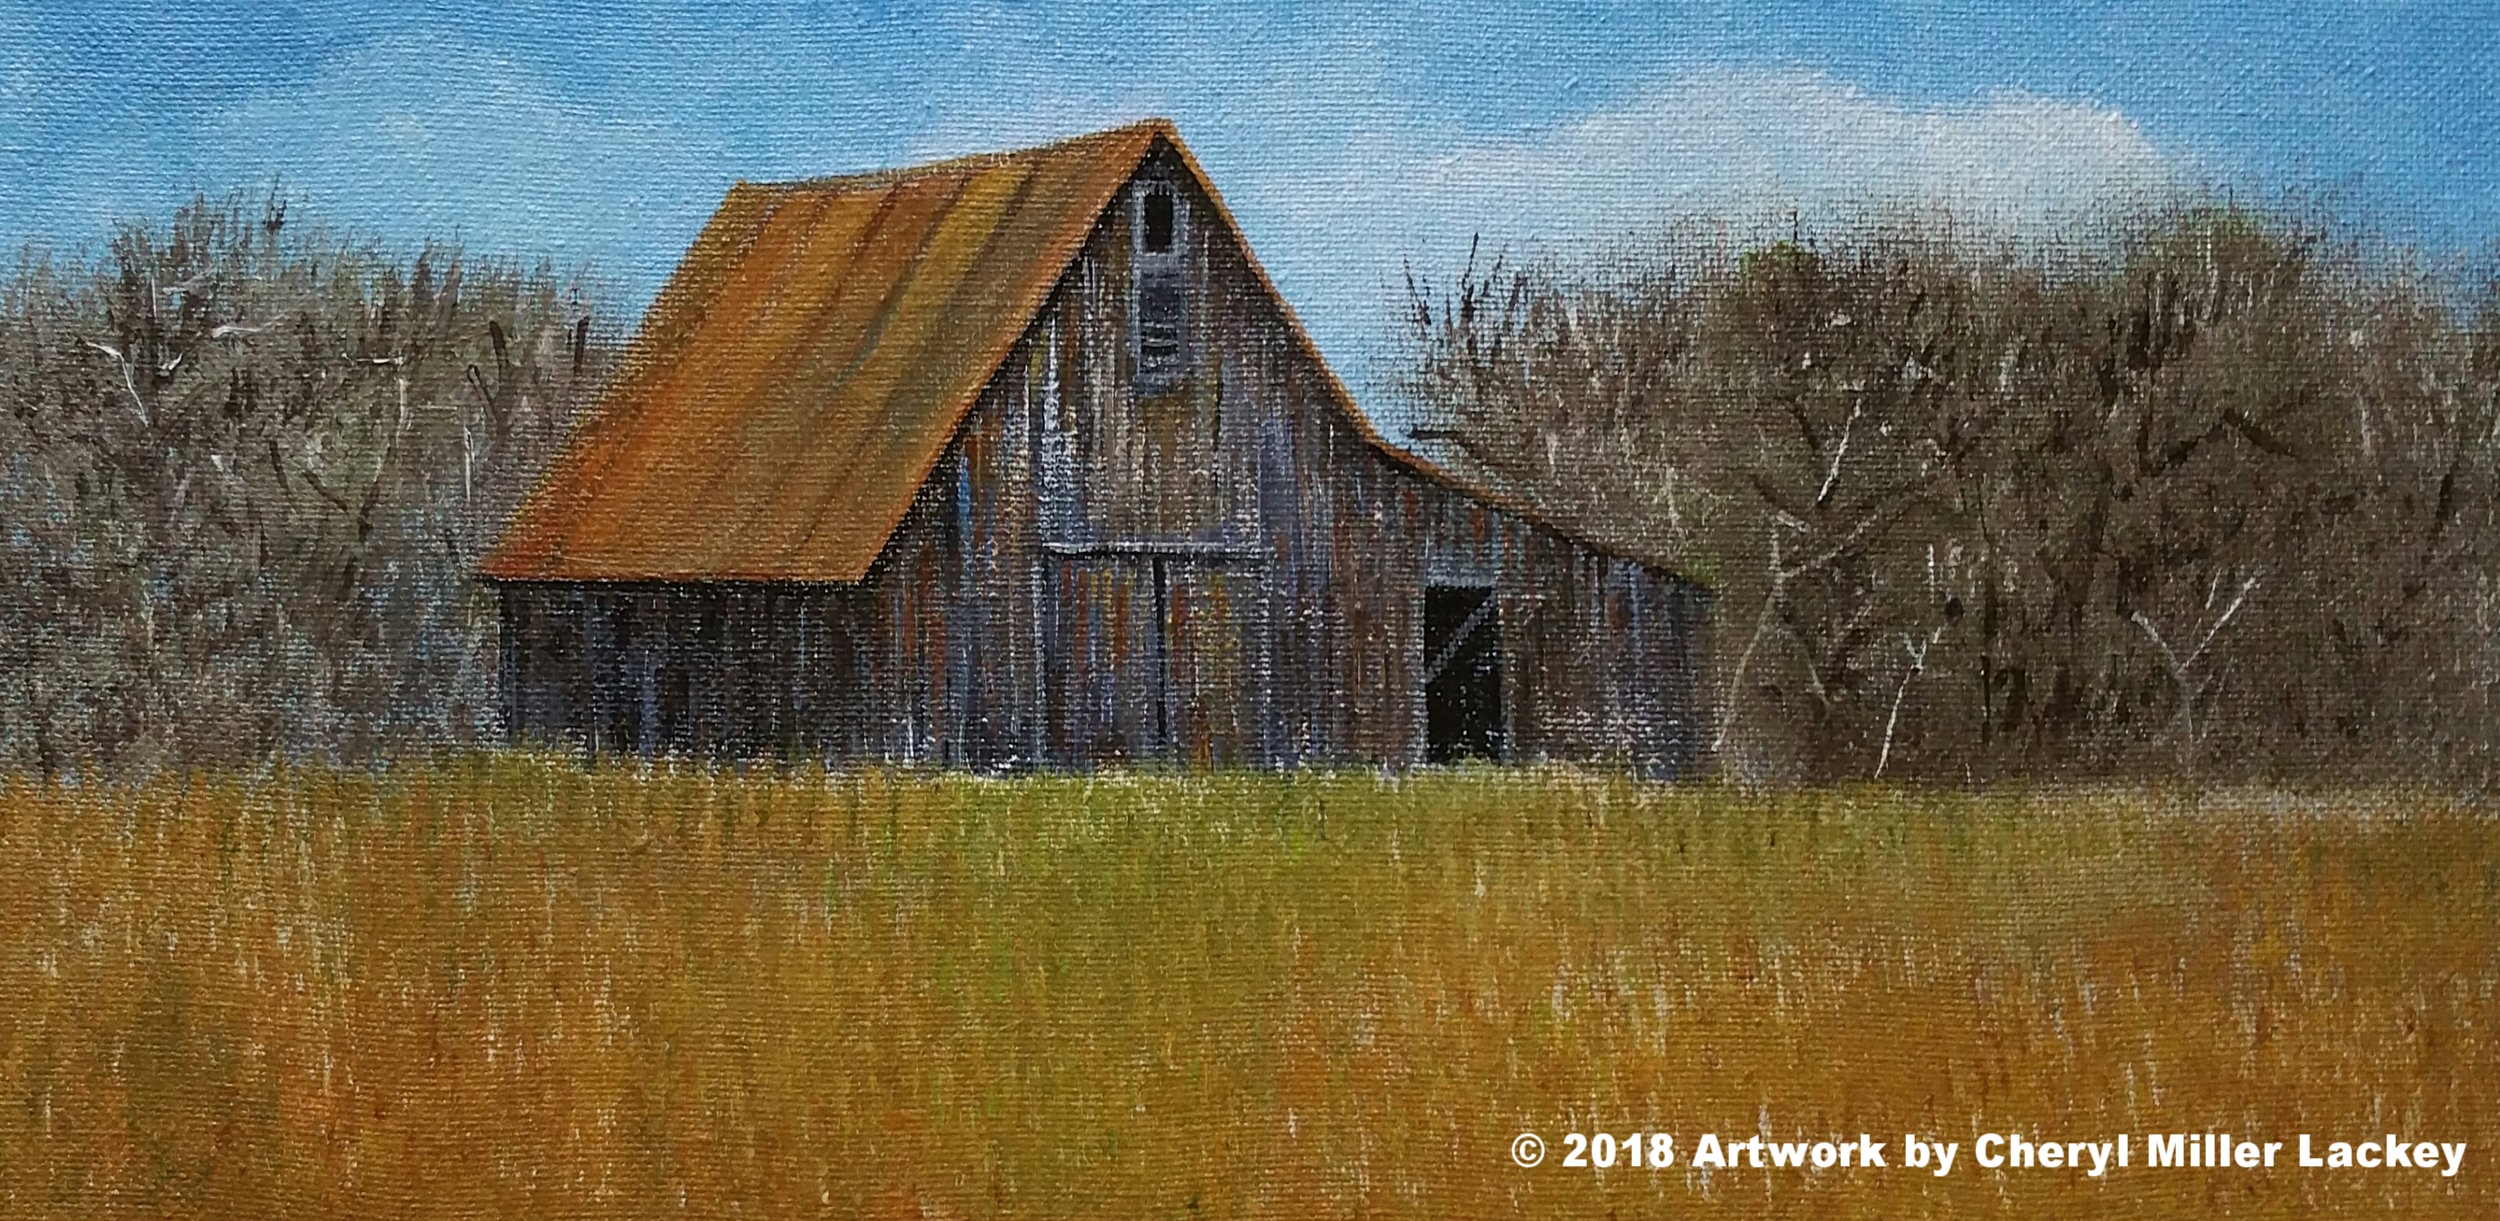 Lackey_Autumn Barn_Acrylic 7 X 14.jpg